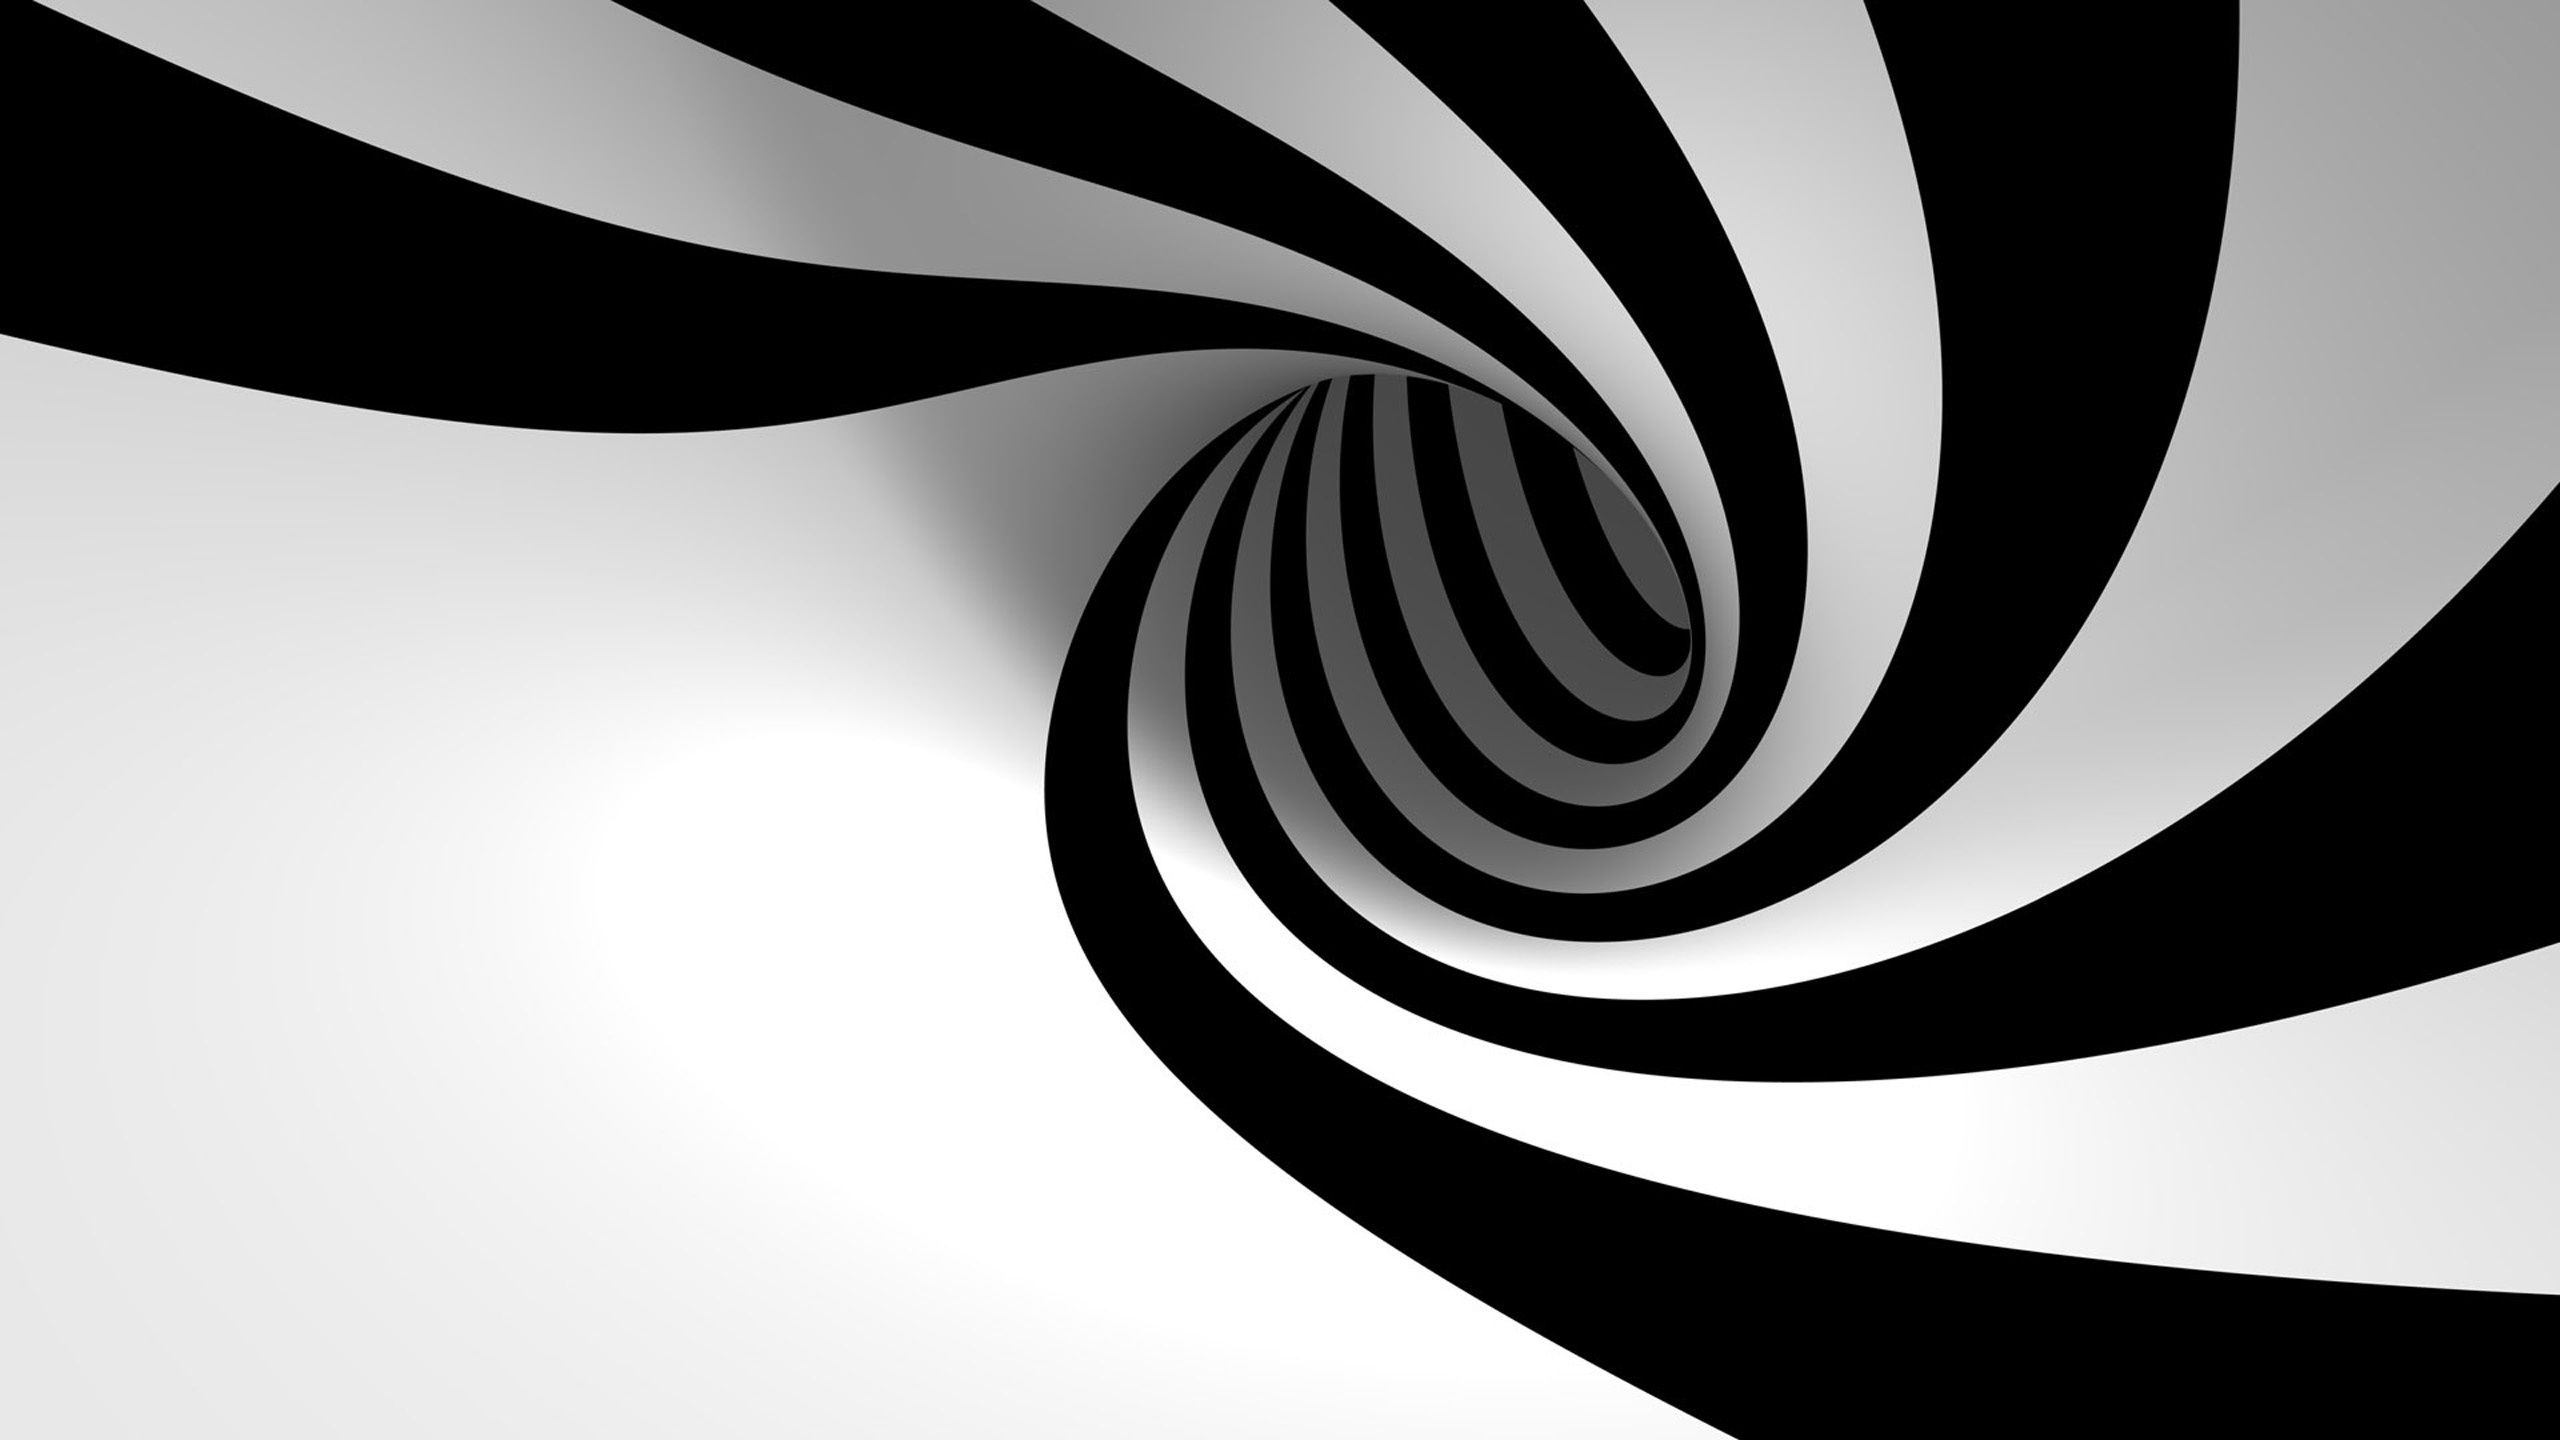 2560x1440 3d Black White Spiral Wallpaper Black And White Wallpaper Iphone Desktop Wallpaper Black Black And White Wallpaper